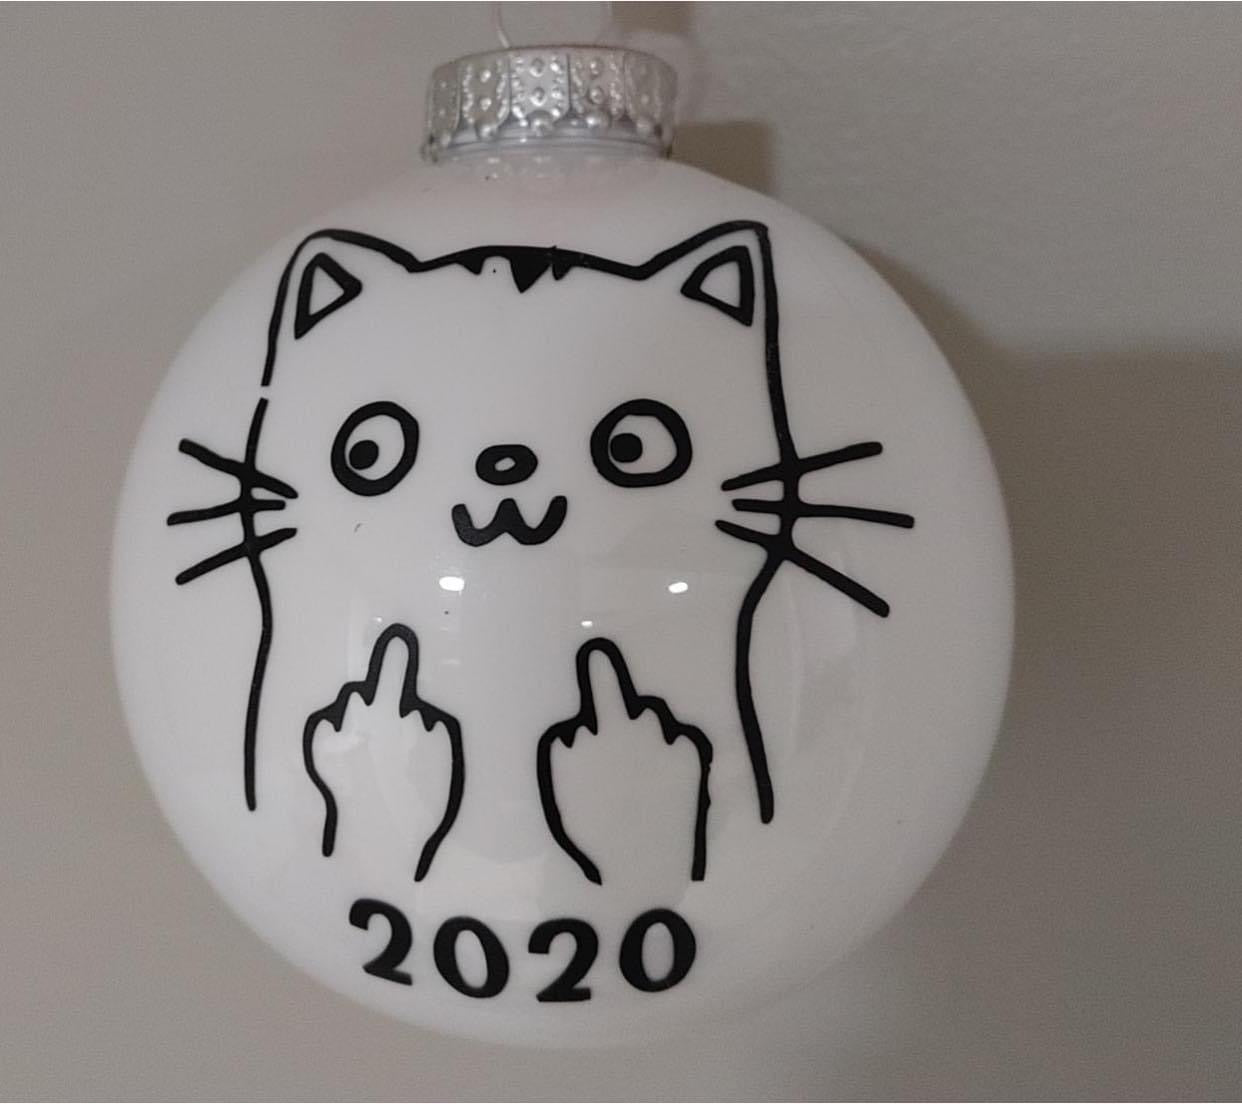 Middle finger cat 2020 ornament